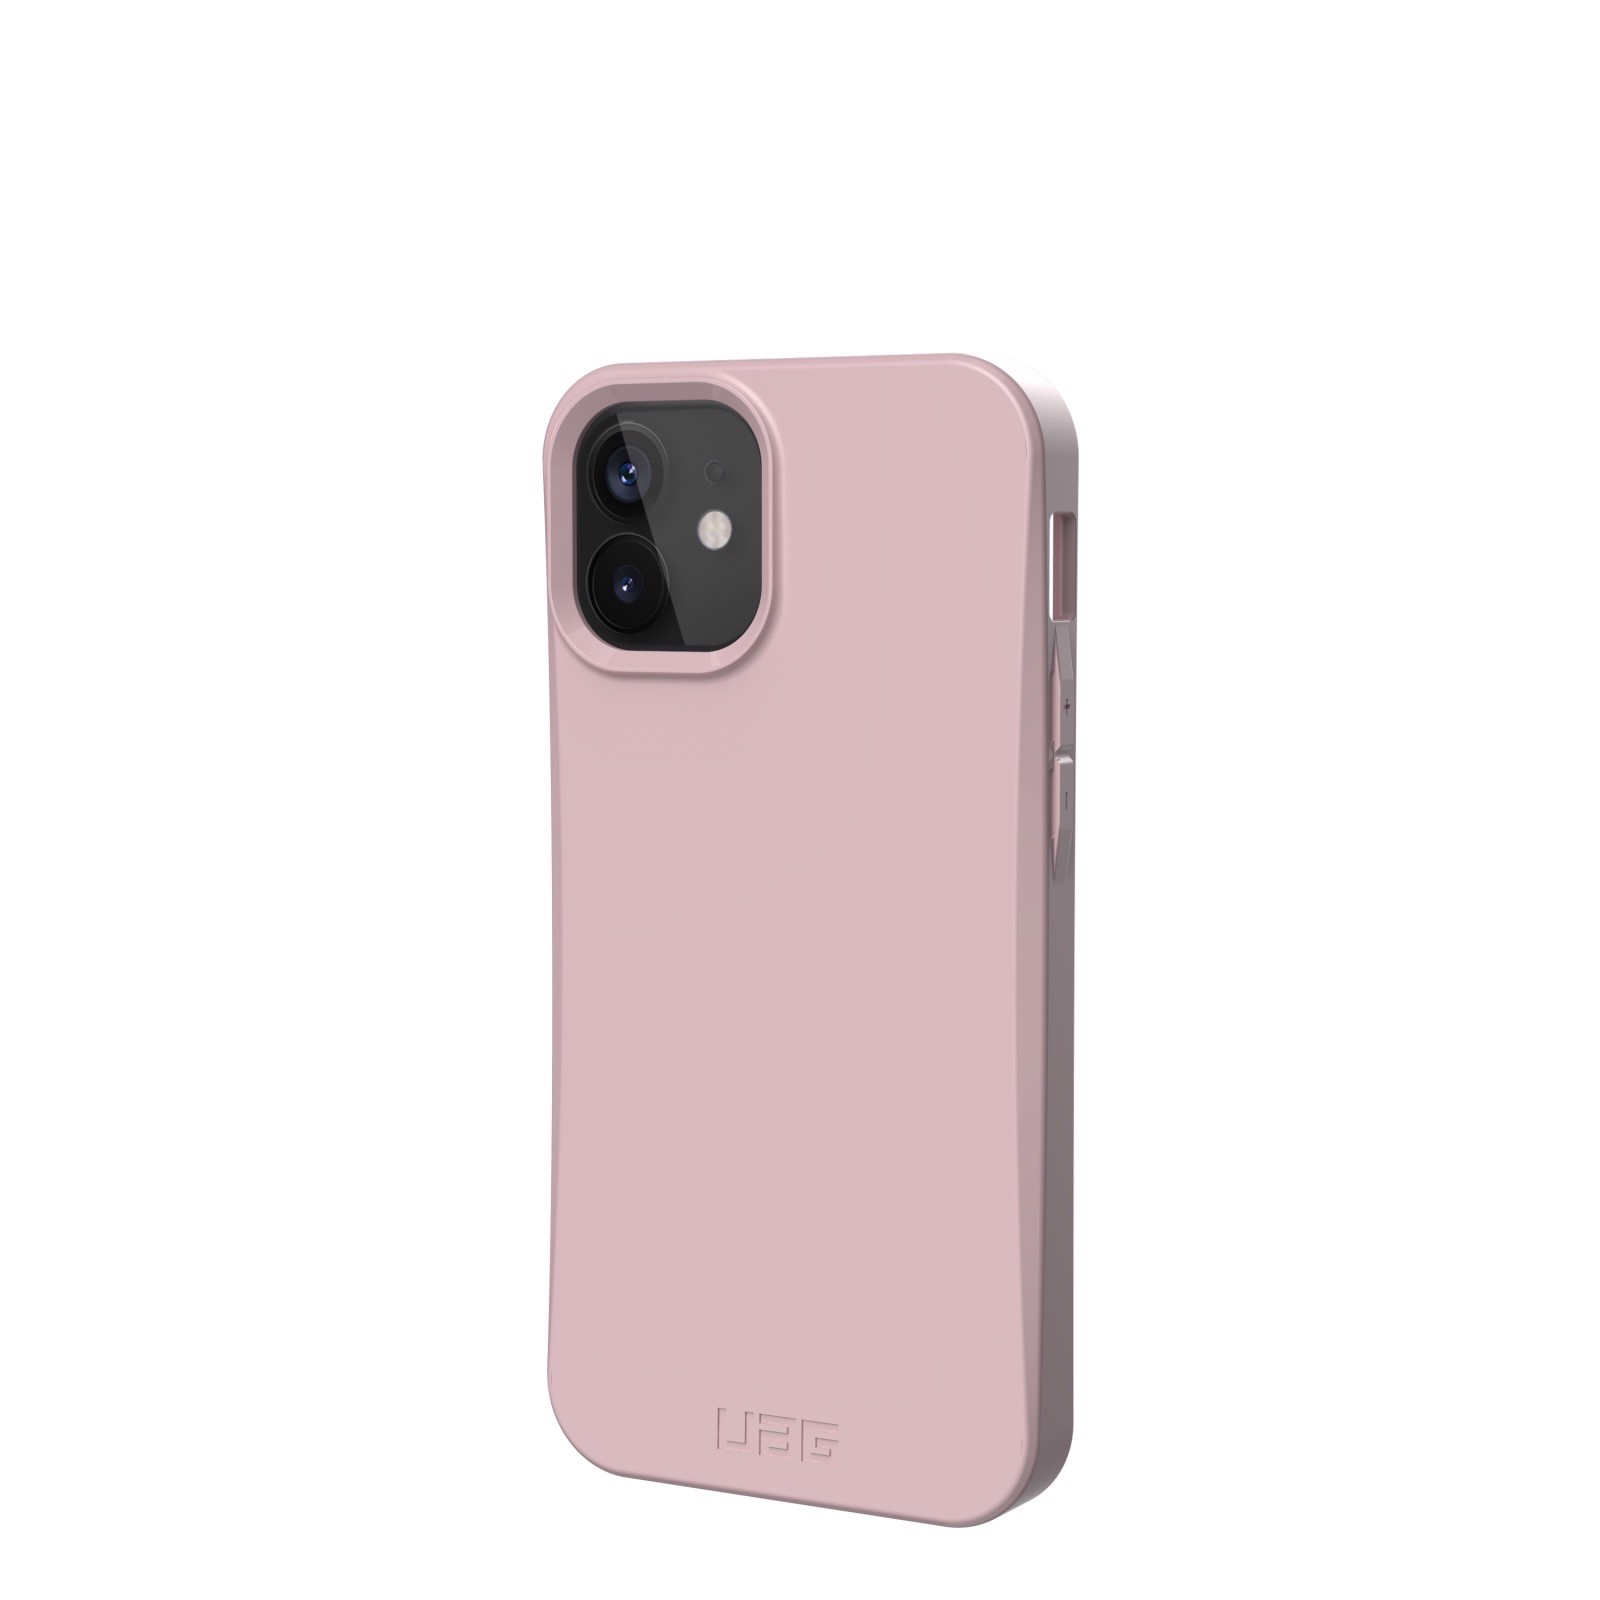 ỐP LƯNG UAG OUTBACK CHO IPHONE 12 MINI [5.4-INCH] - Lilac